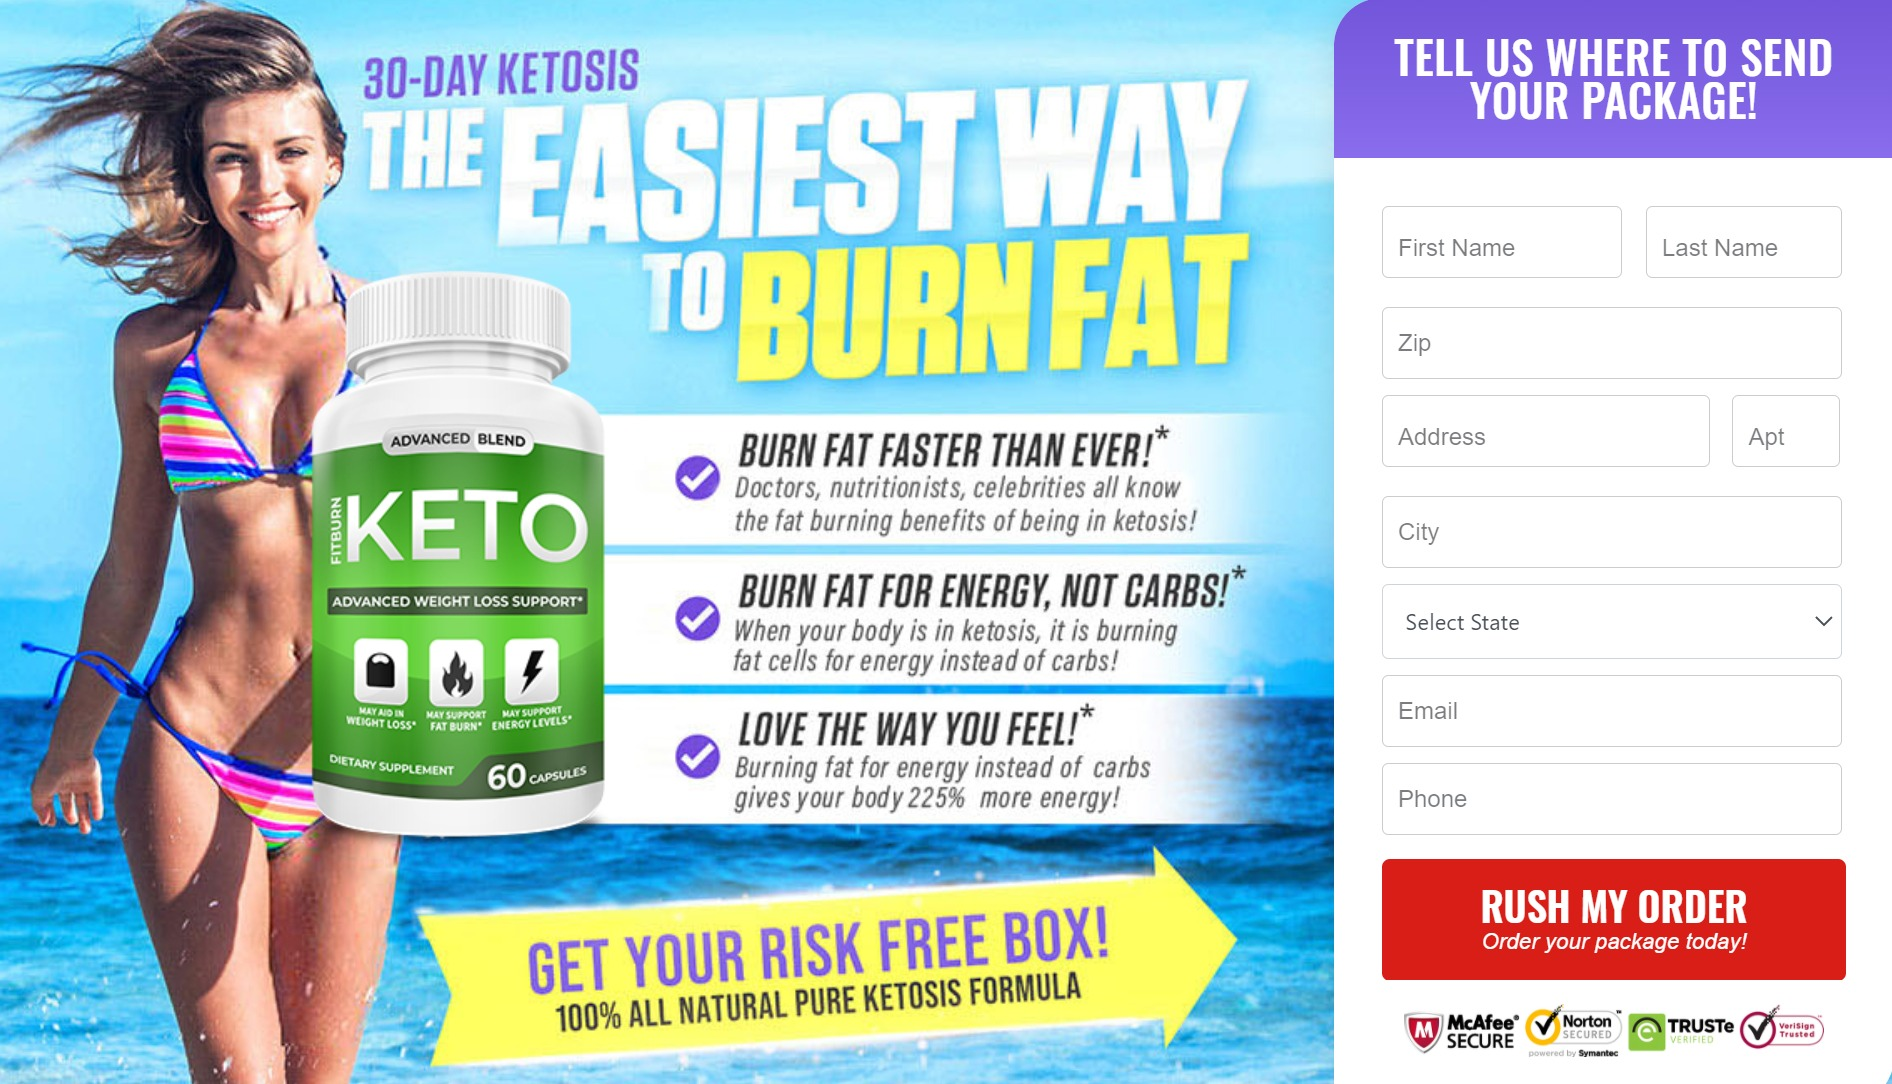 Fitburn Keto Advaned Blend® *Reviews*  5 Ways To Lose 15 LBS Weight!